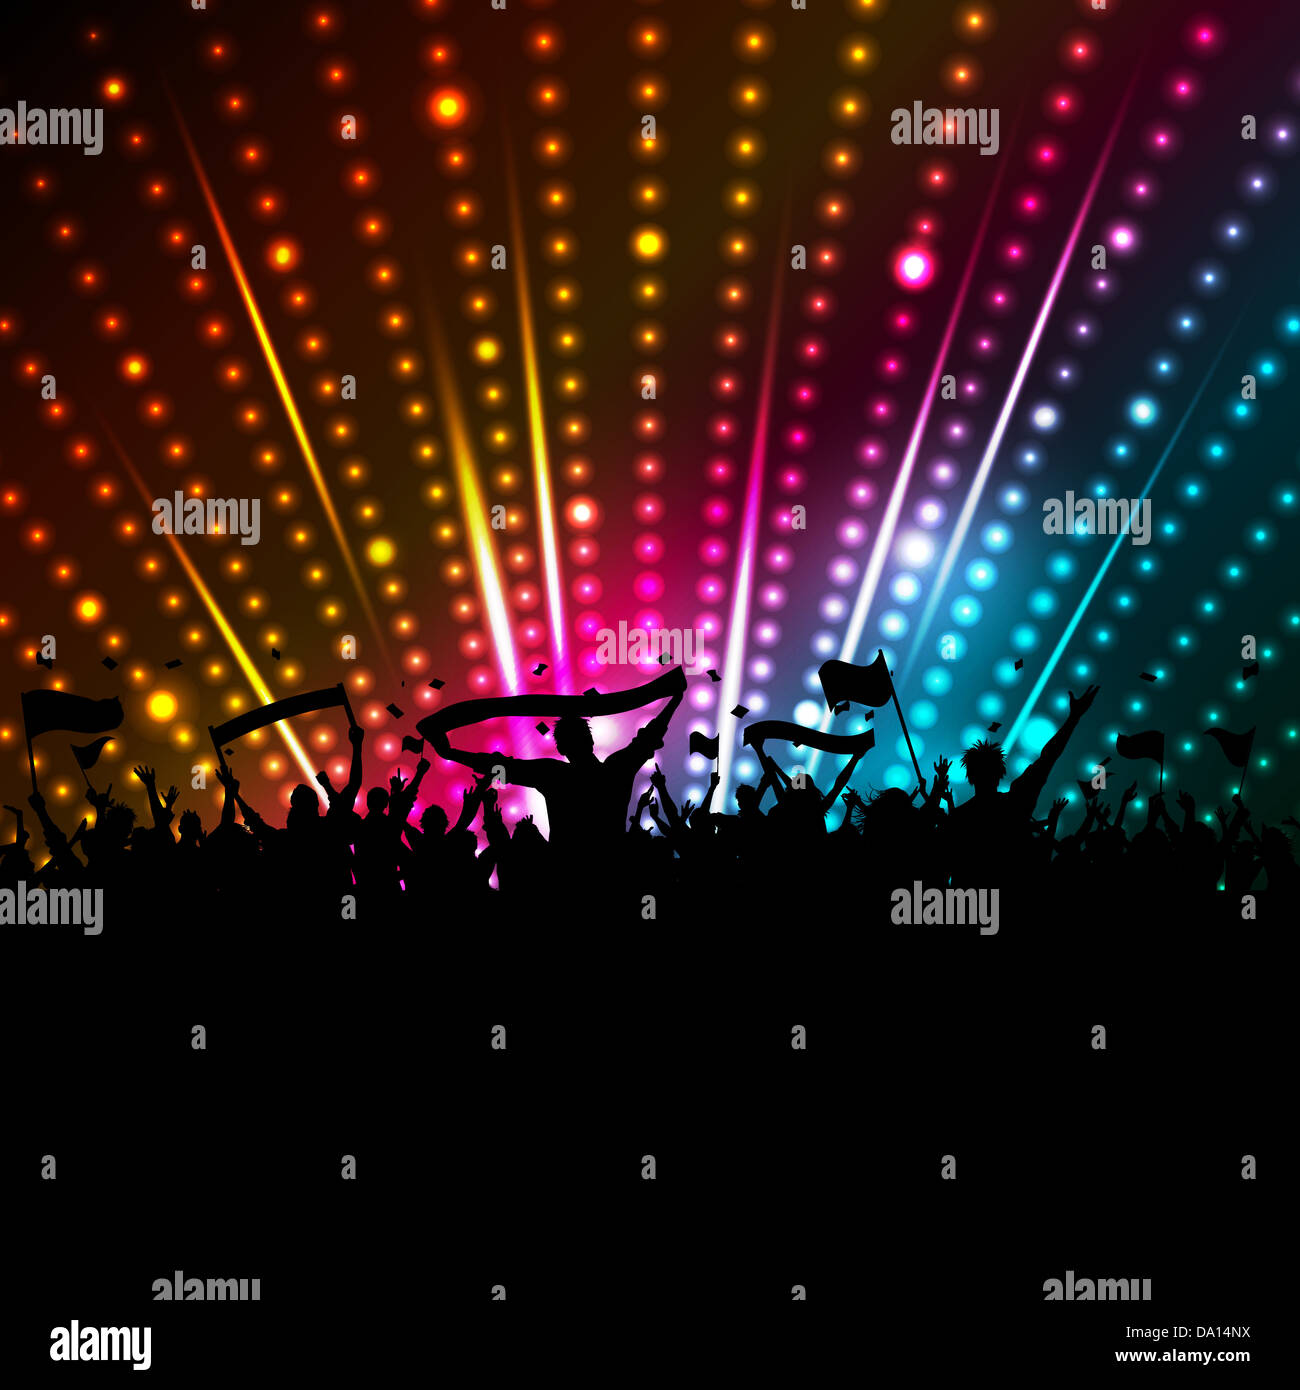 Page 3 Dancing Silhouettes Disco Lights High Resolution Stock Photography And Images Alamy